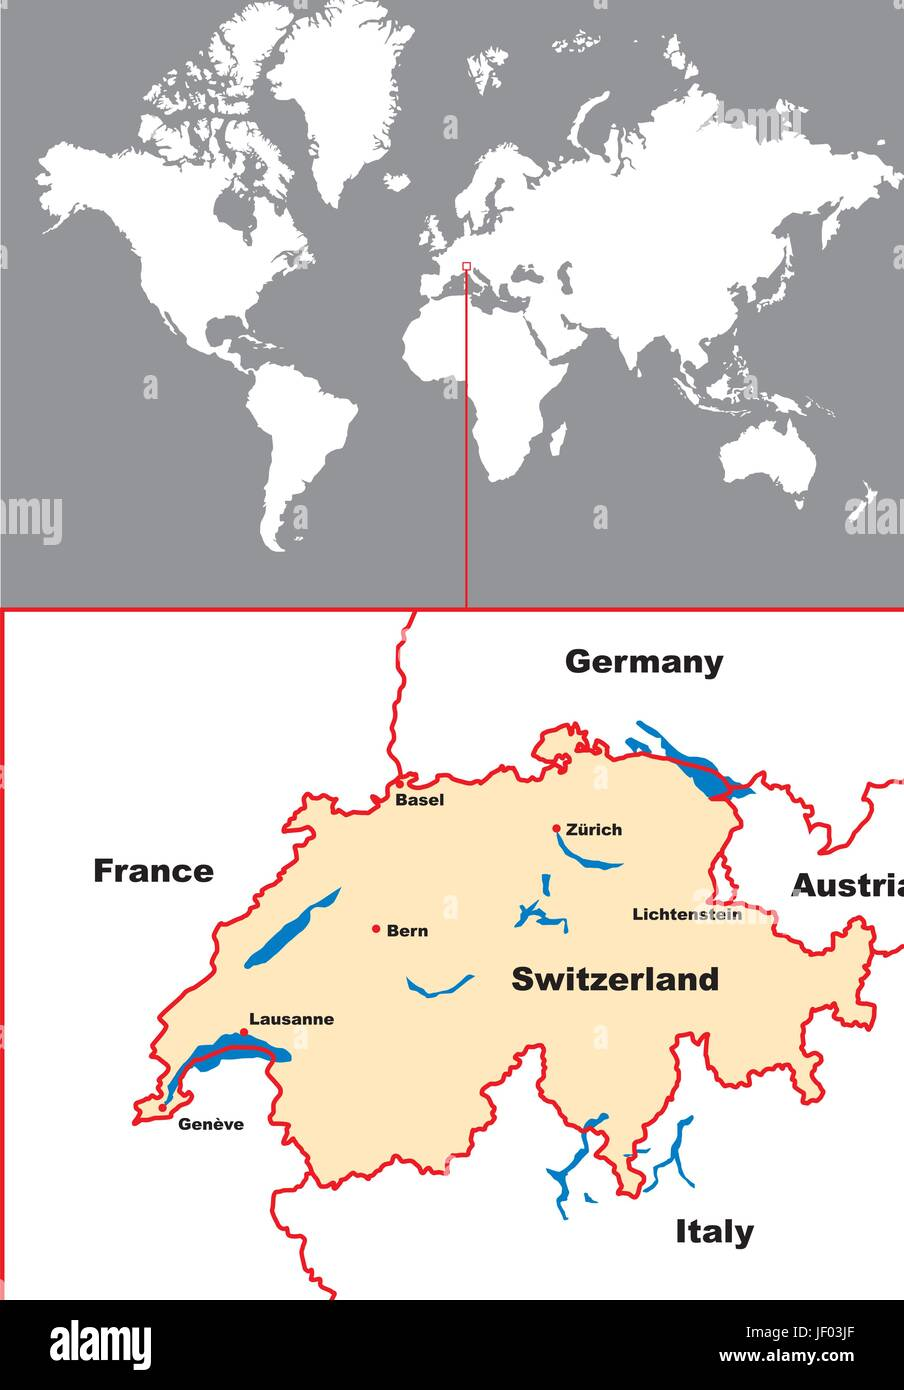 Switzerland Card Atlas Map Of The World Map Euro Europe Stock